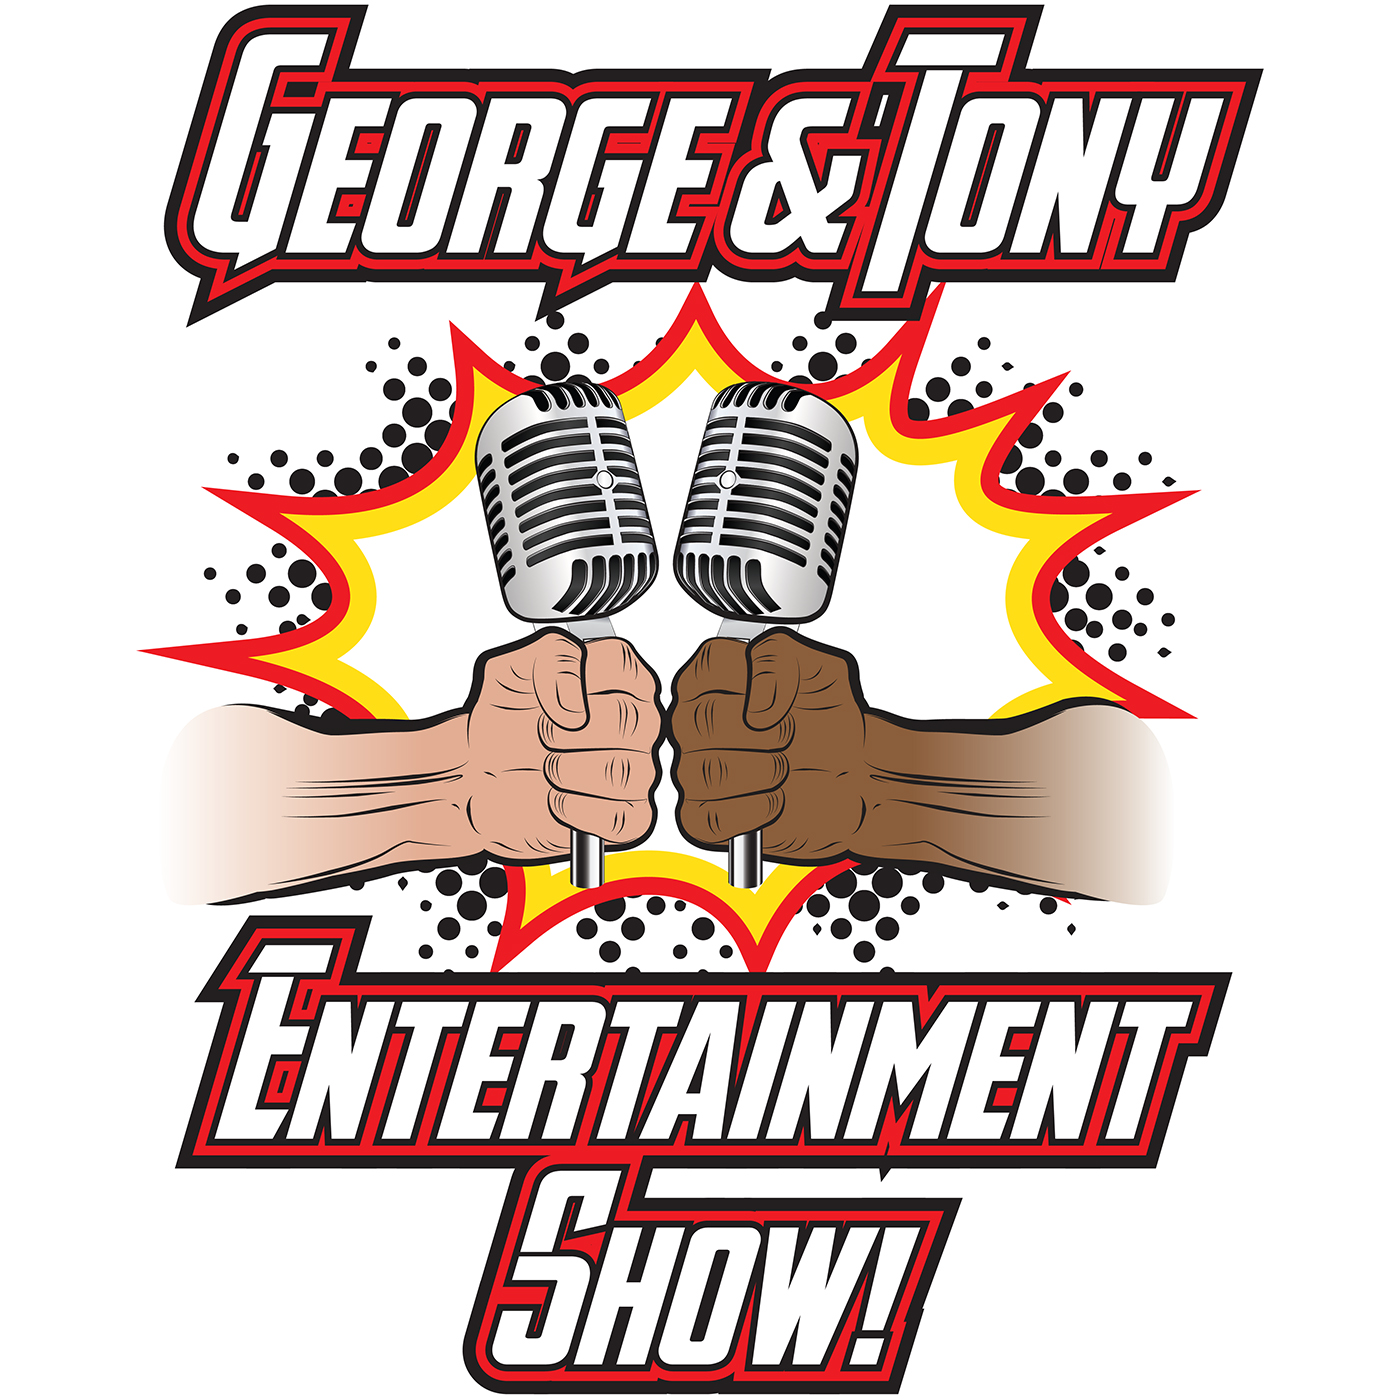 George and Tony Entertainment Show #13